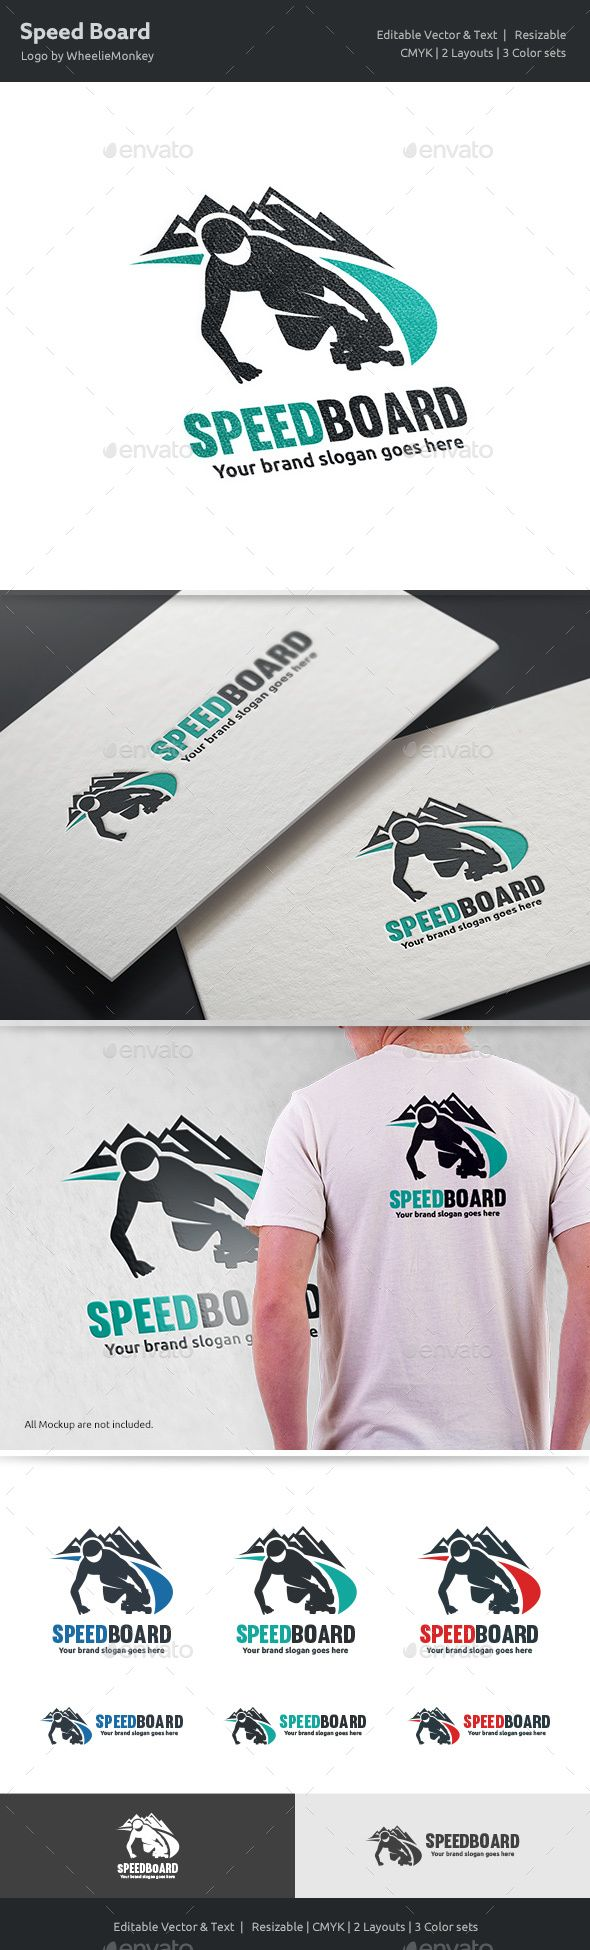 Speed Board Logo  — EPS Template #slope #curve • Download ➝ https://graphicriver.net/item/speed-board-logo/18422998?ref=pxcr